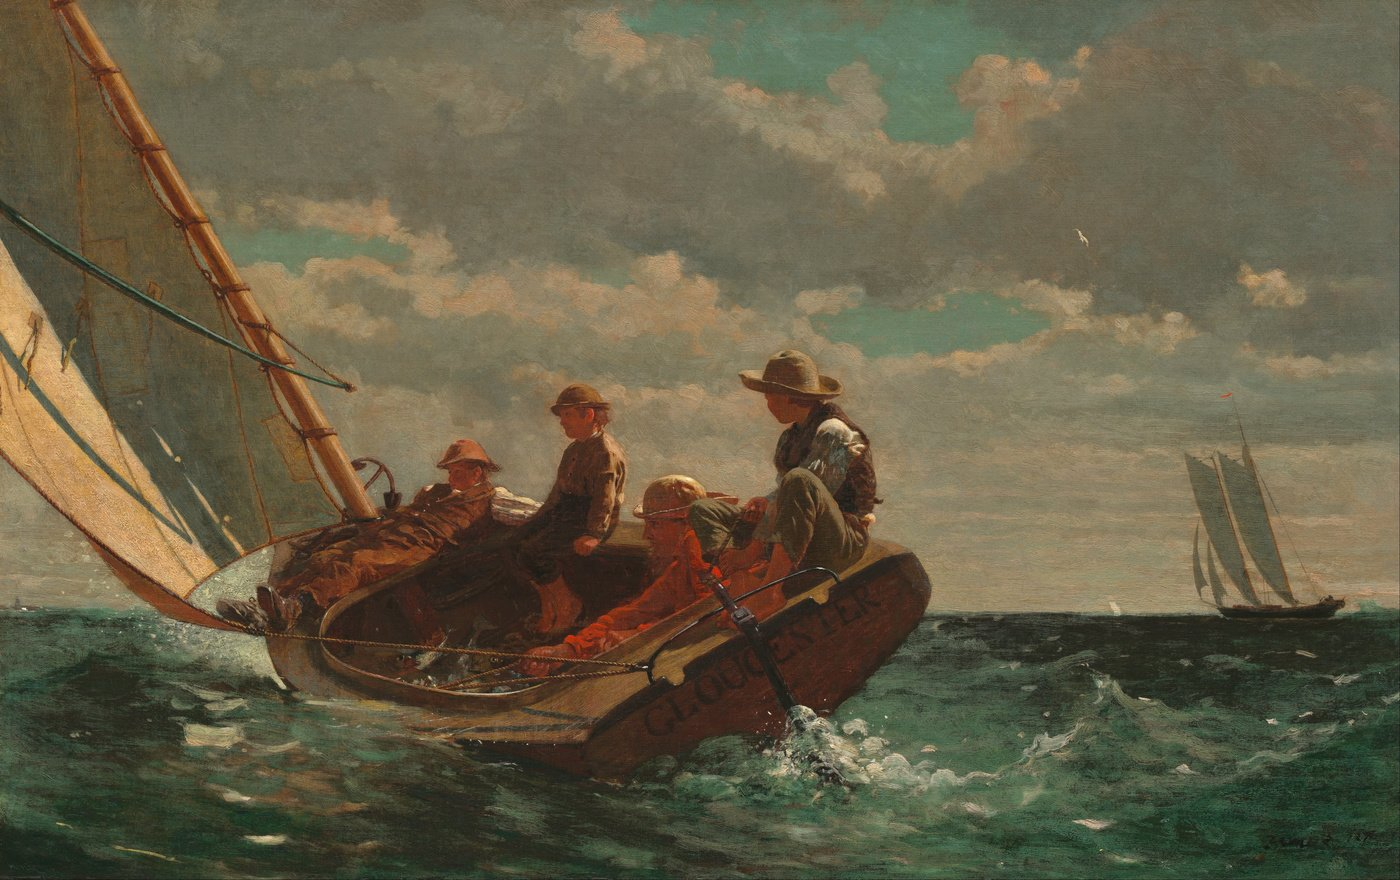 Winslow Homer background